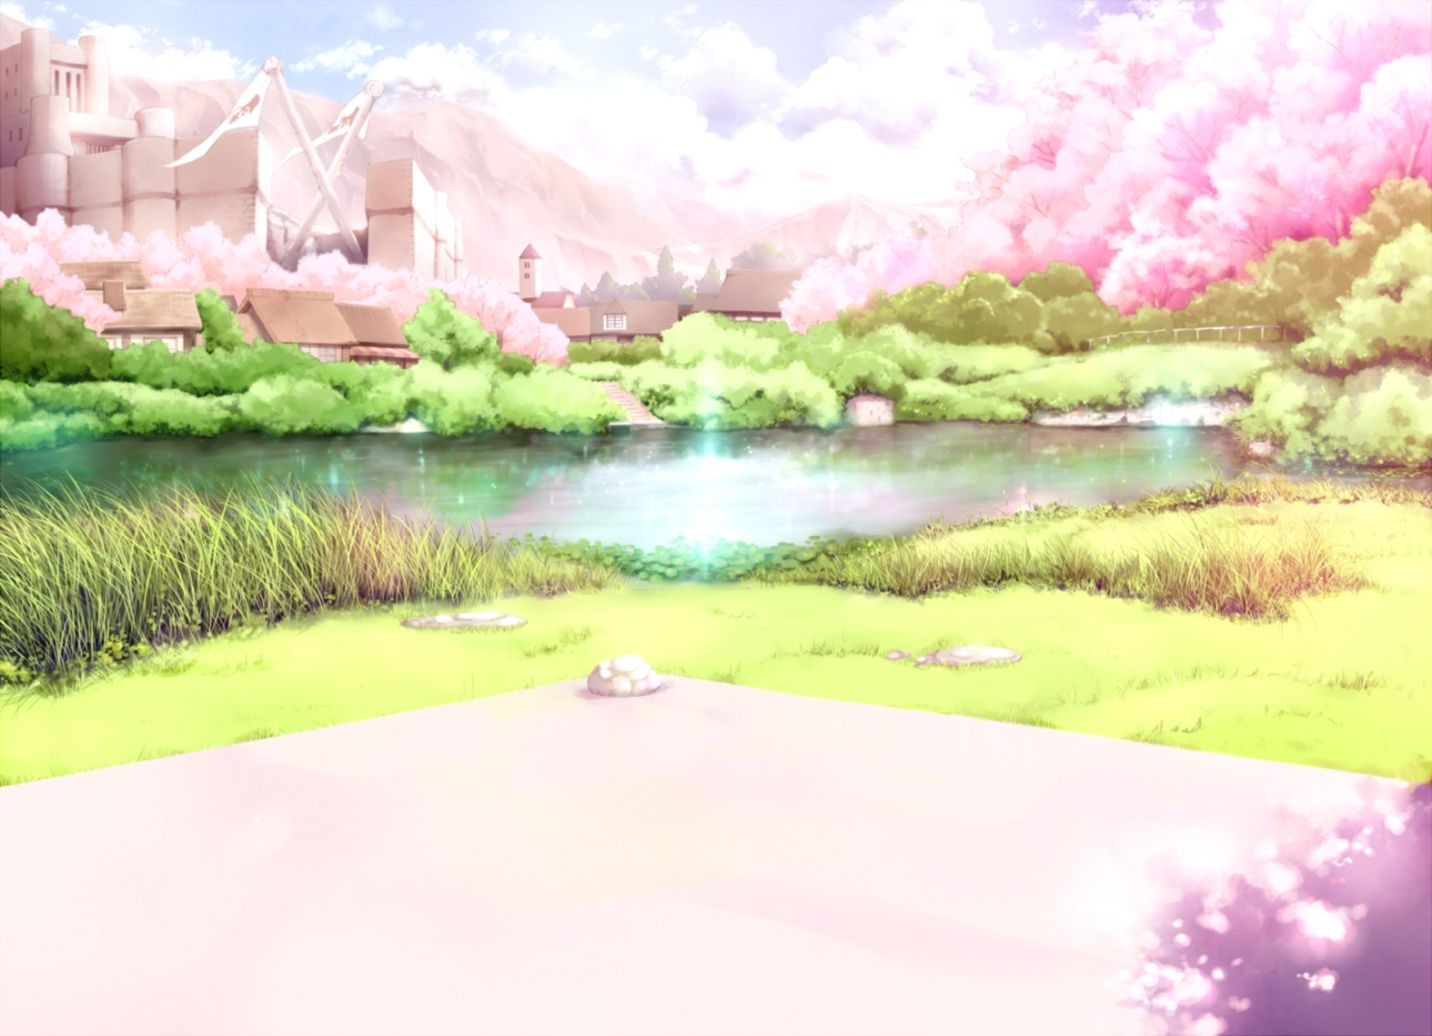 Anime Cherry Blossoms Landscape Wallpapers Hd Desktop - Scenery Cherry Blossom Anime Background - HD Wallpaper